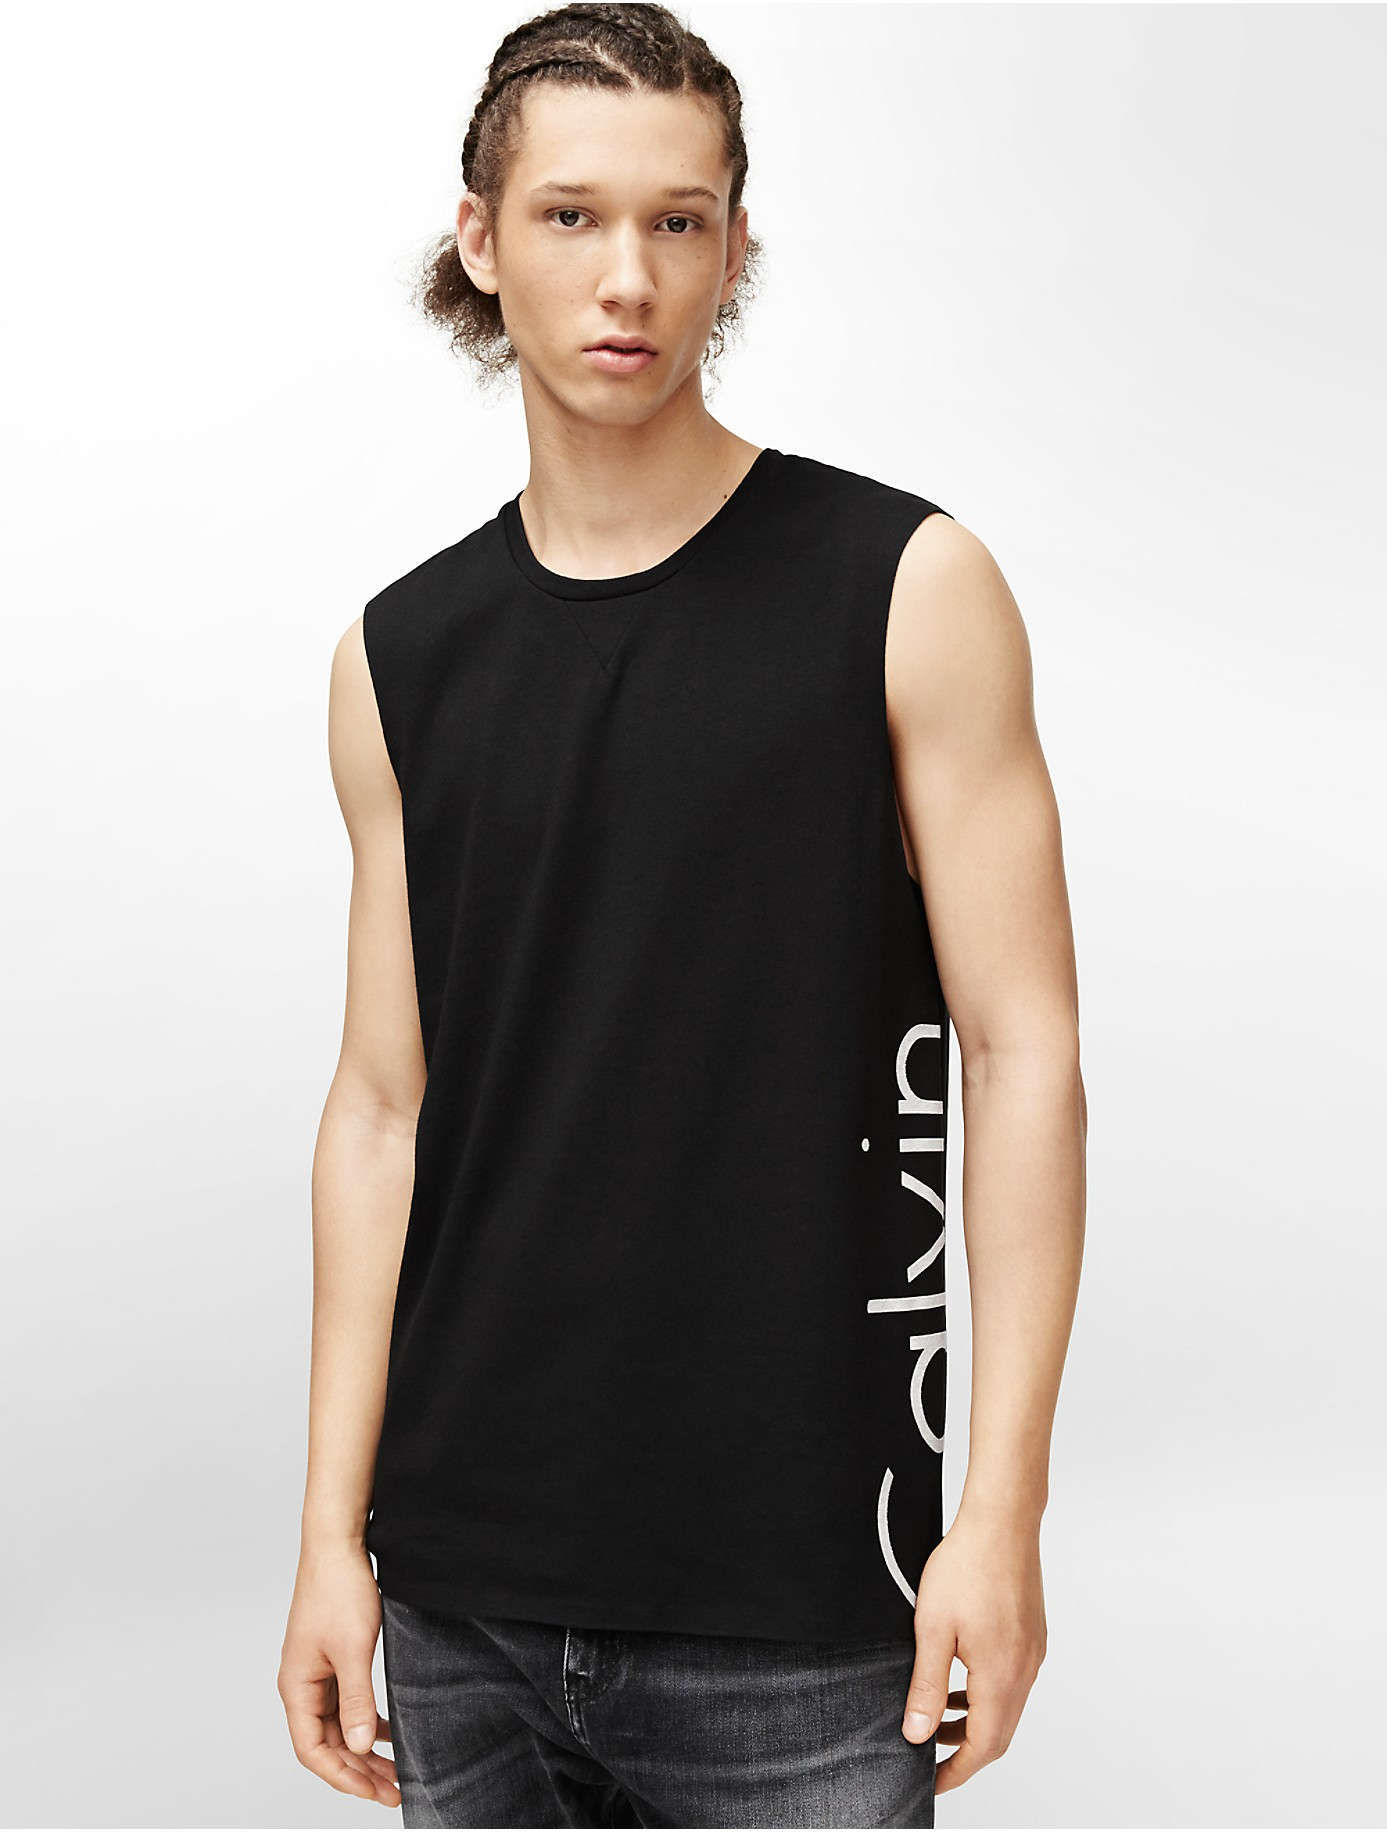 how to cut a tshirt into a muscle shirt